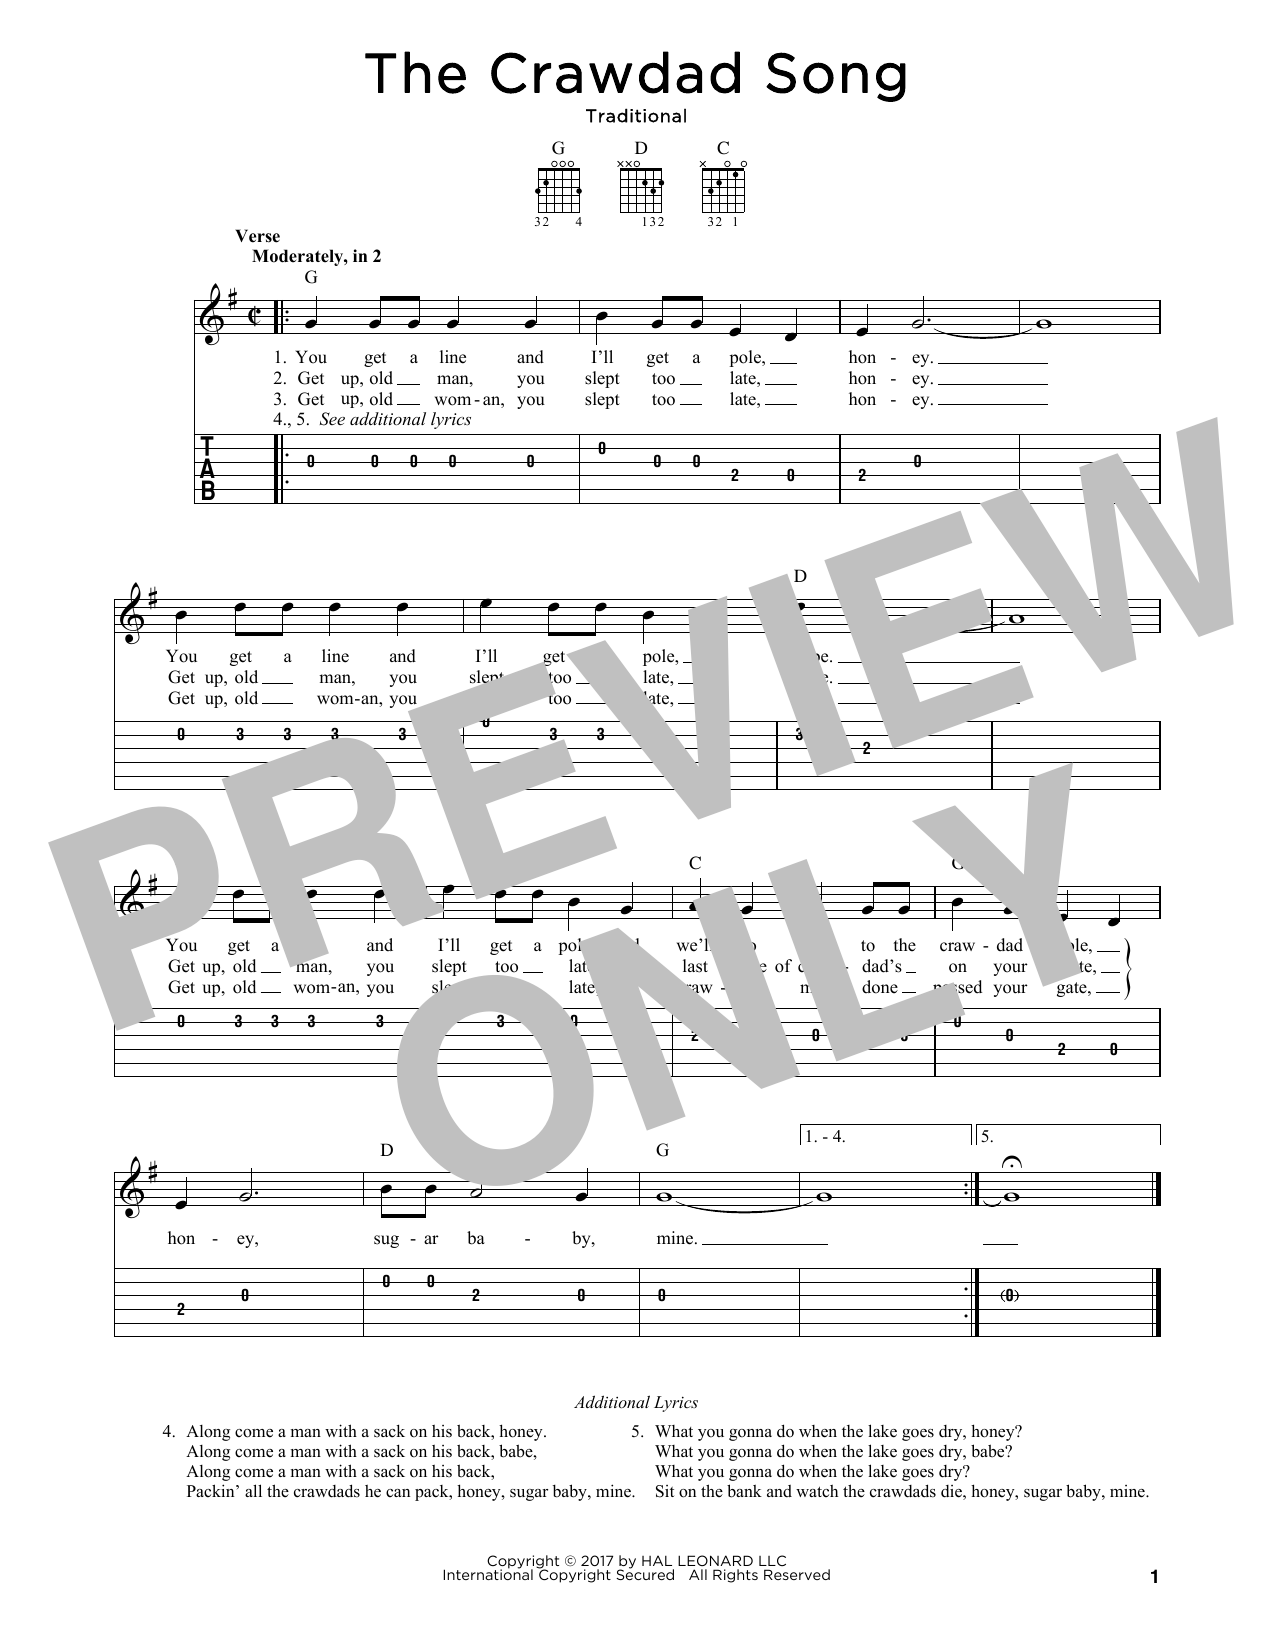 Traditional The Crawdad Song Sheet Music Notes Chords Printable